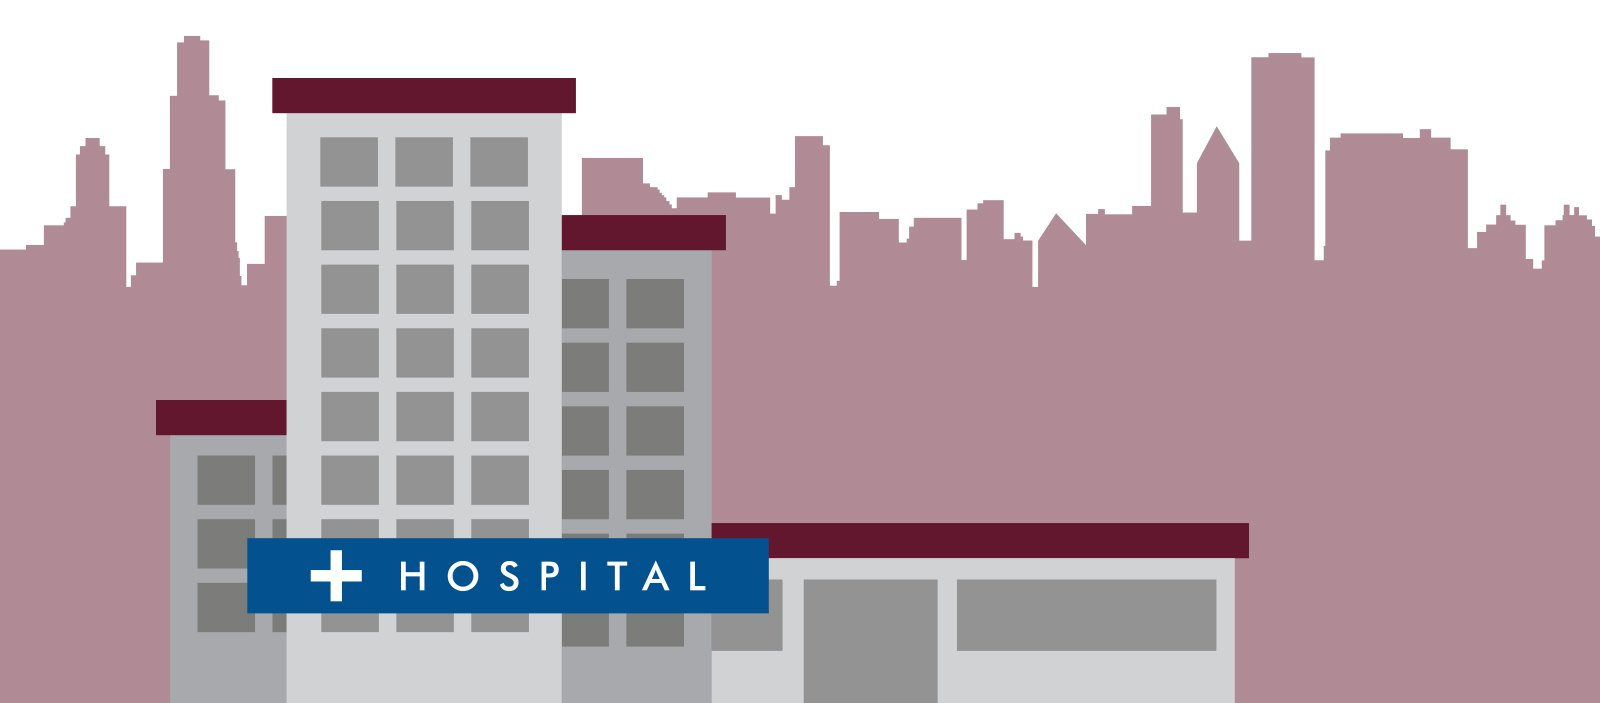 Drawing of a Hospital building with a skyline in the background.